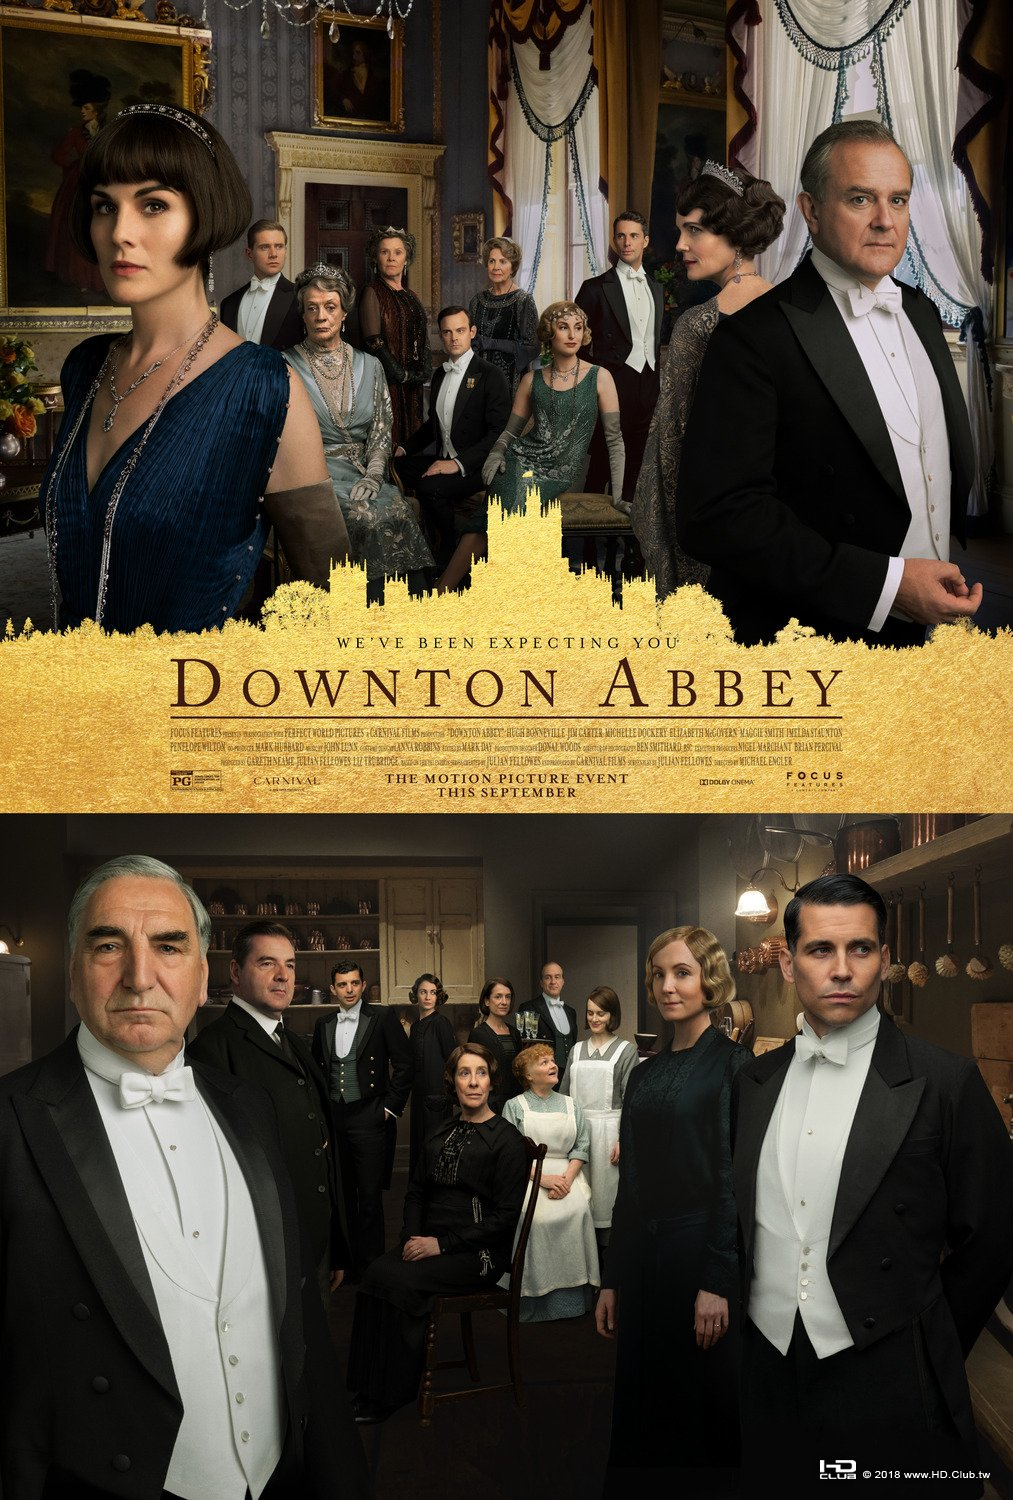 downton_abbey_ver26_xlg.jpg